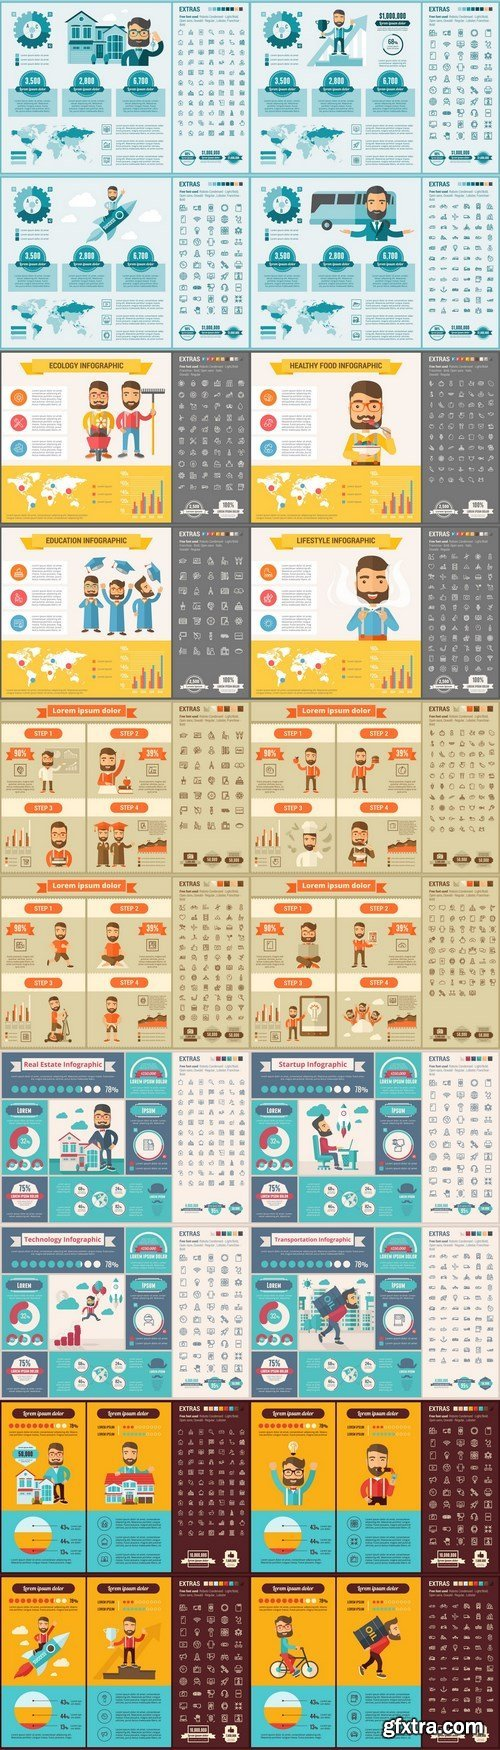 Flat Design Infographic 2 Template - 20xEPS